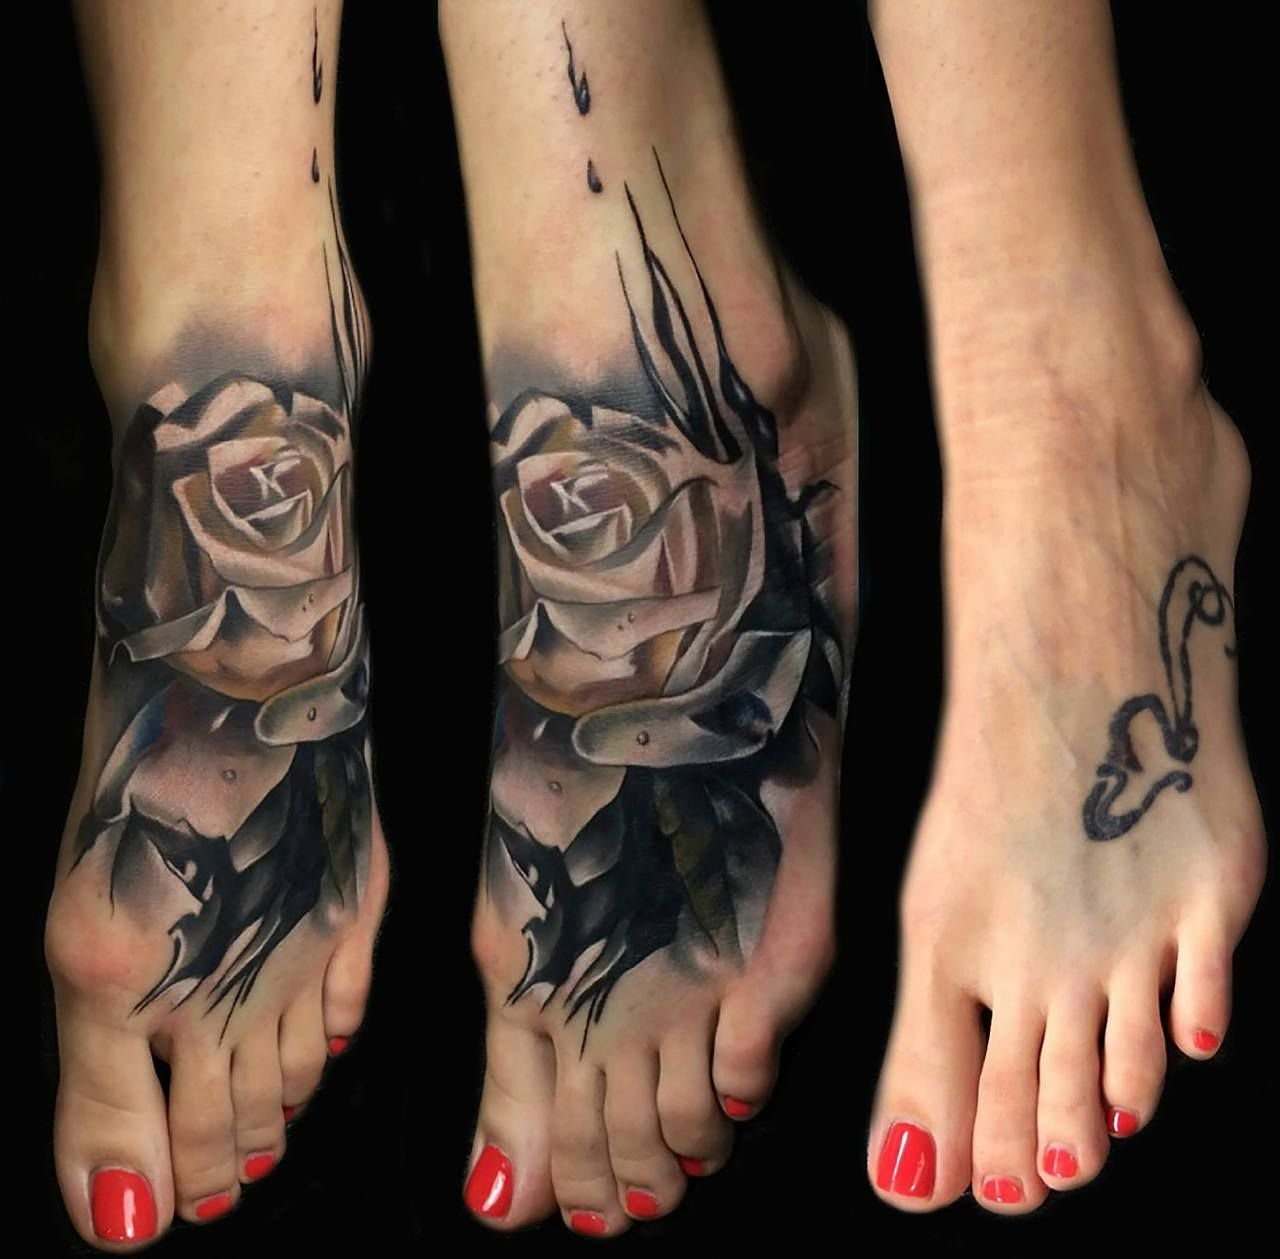 10 Spectacular Cover Up Ideas For Tattoos coverup tattoo foot rose cover up tattoo design best tattoo